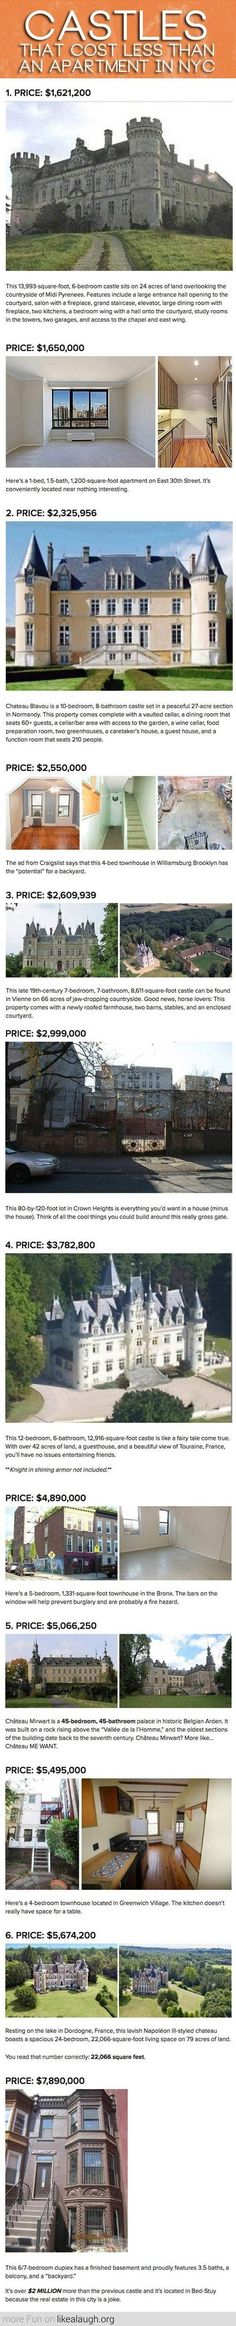 Buying an apartment in New York vs buying a Castle. I'll take any of the castles, please.